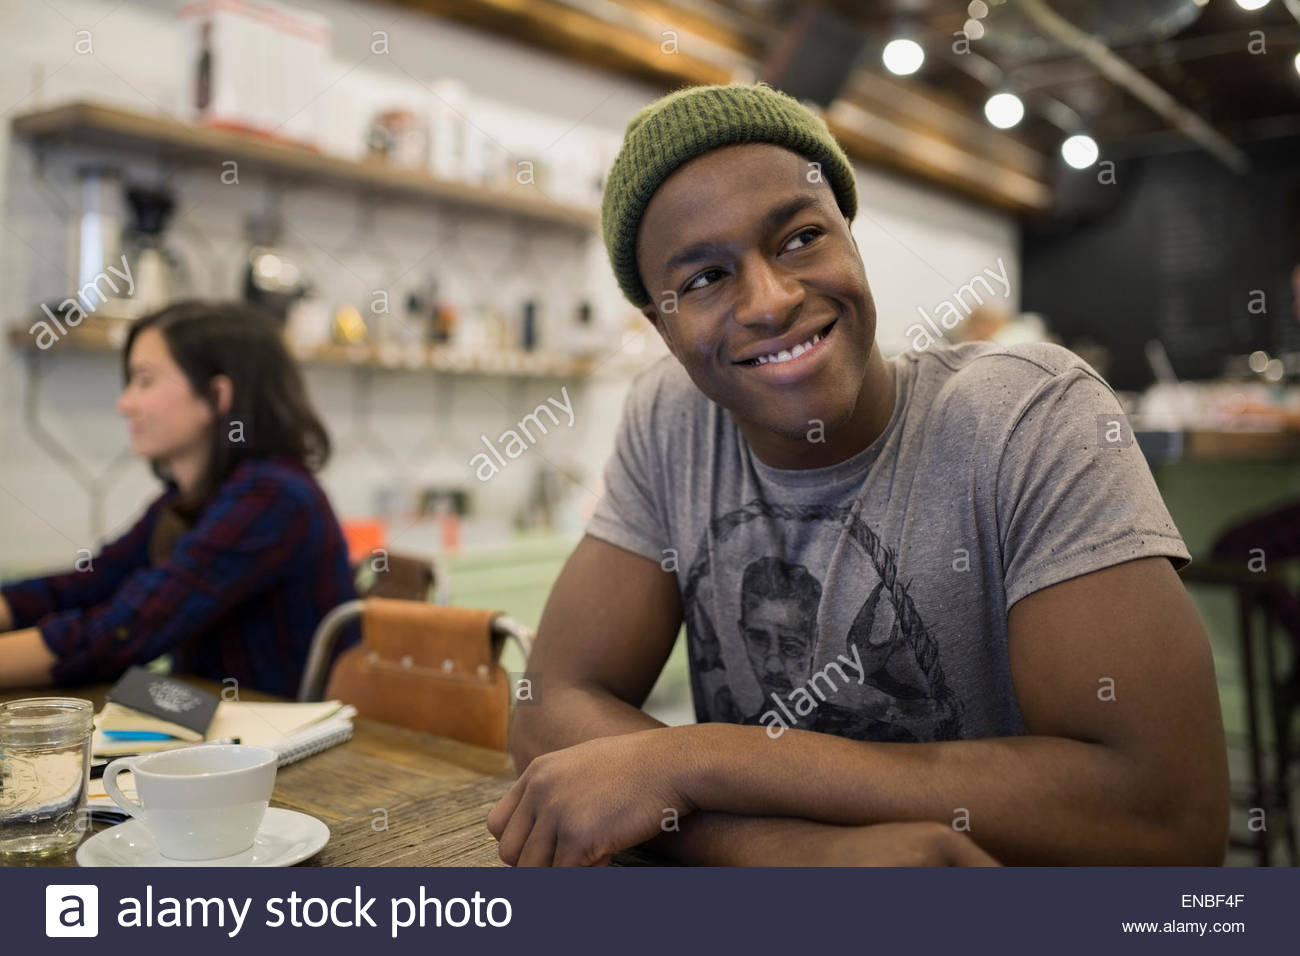 Smiling man in cafe Banque D'Images